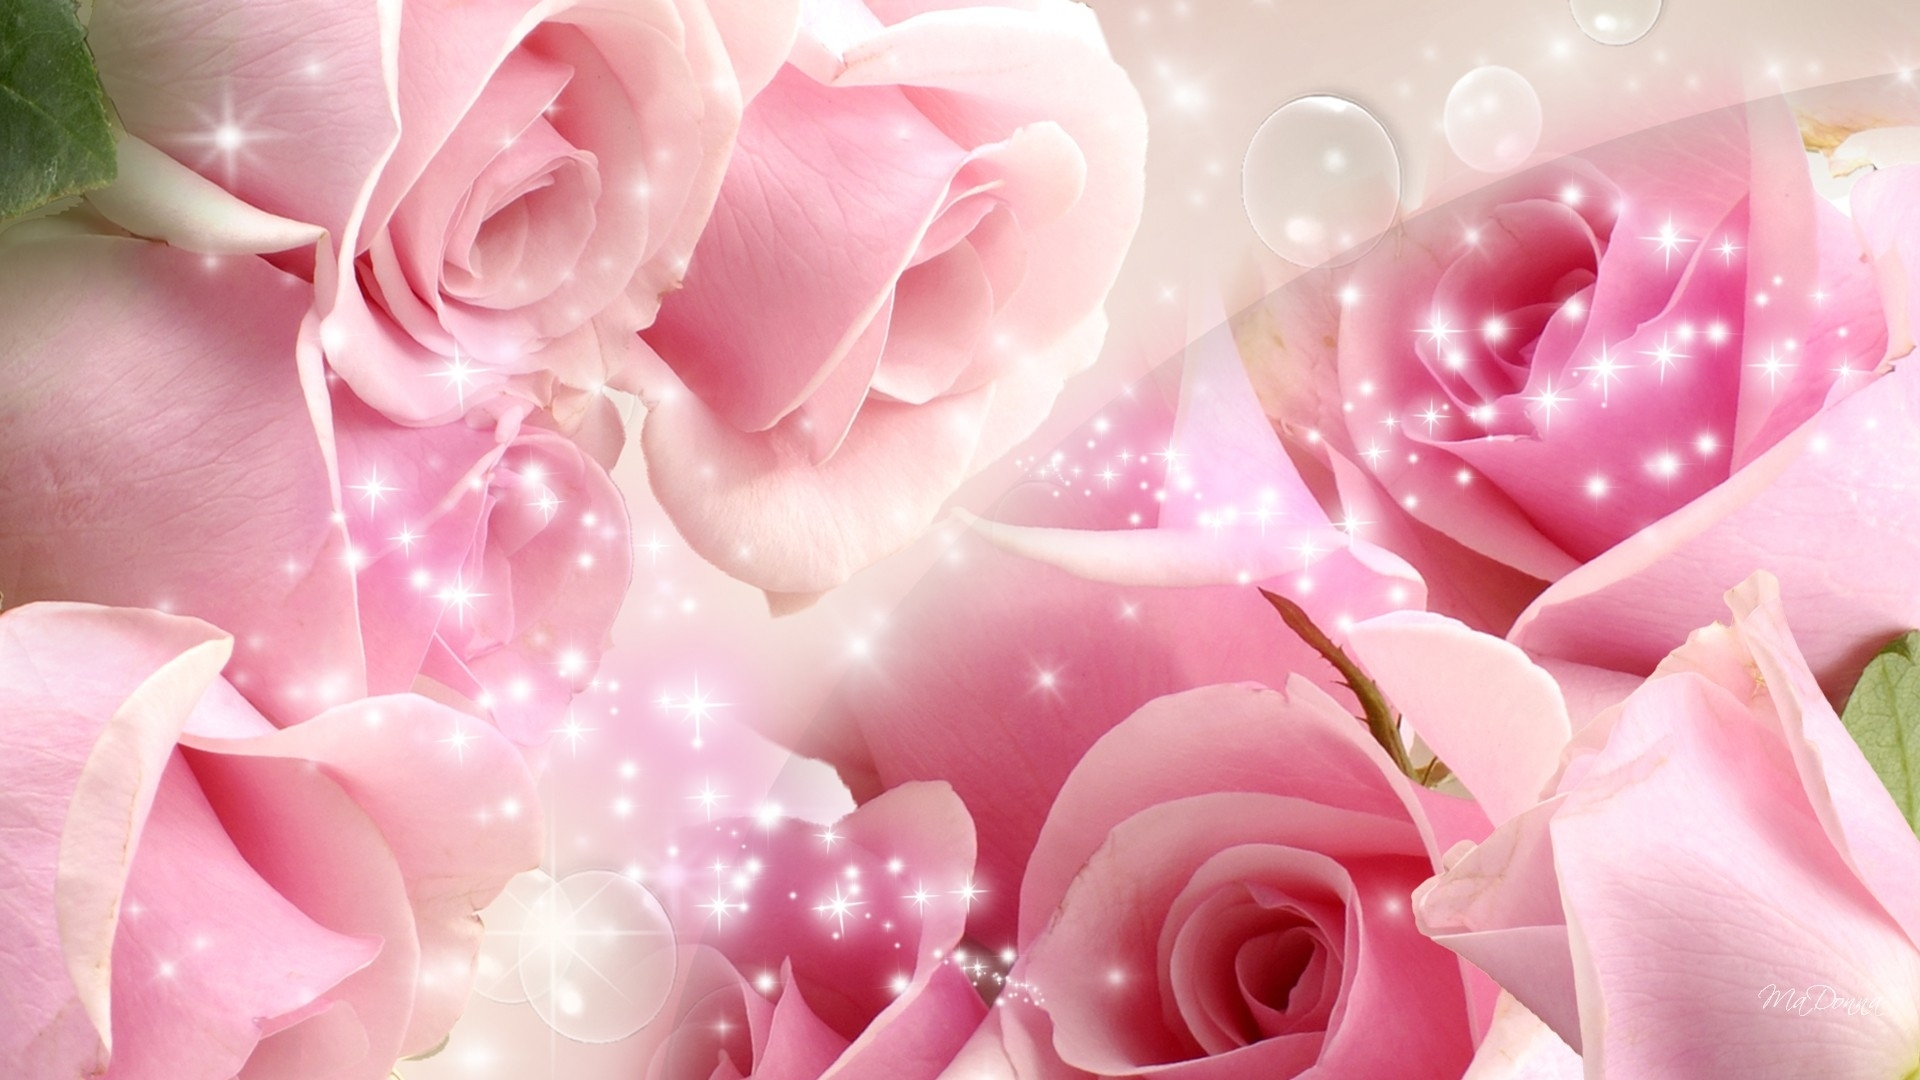 flowers cool pink rose wallpapers (desktop, phone, tablet) - awesome